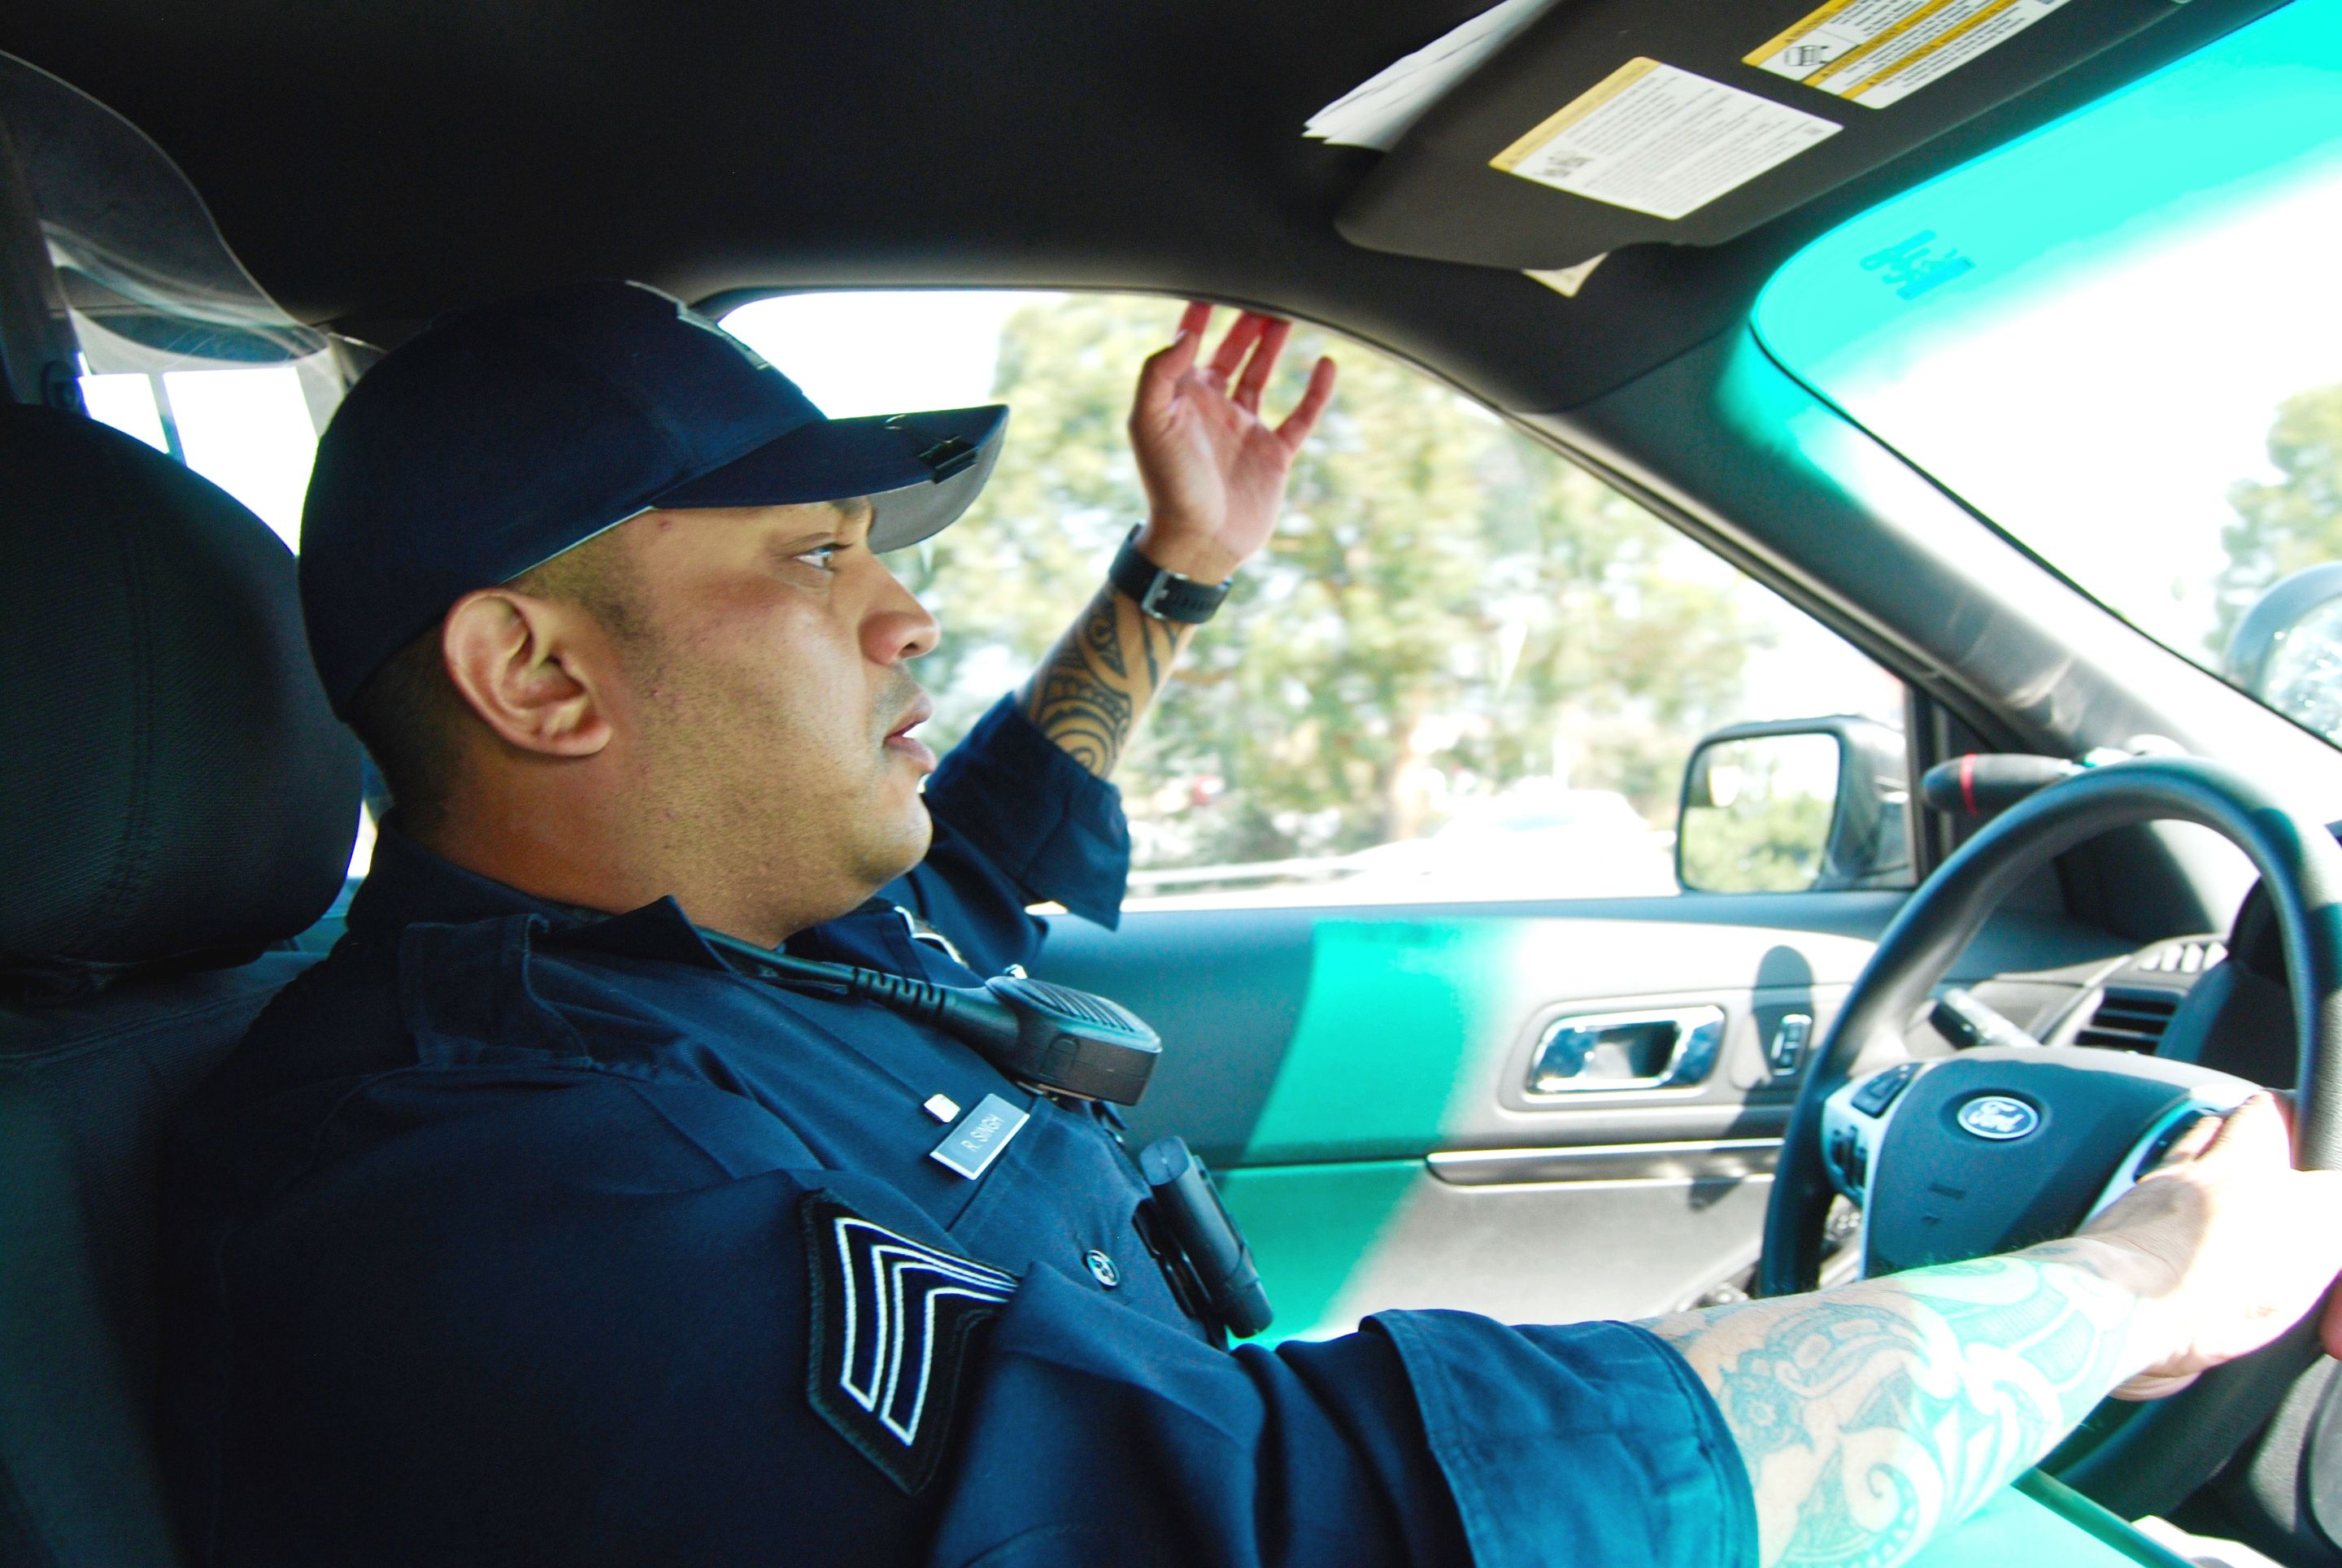 Officer Singh drives to Castlemont High School, a school he's reported to the past five years.